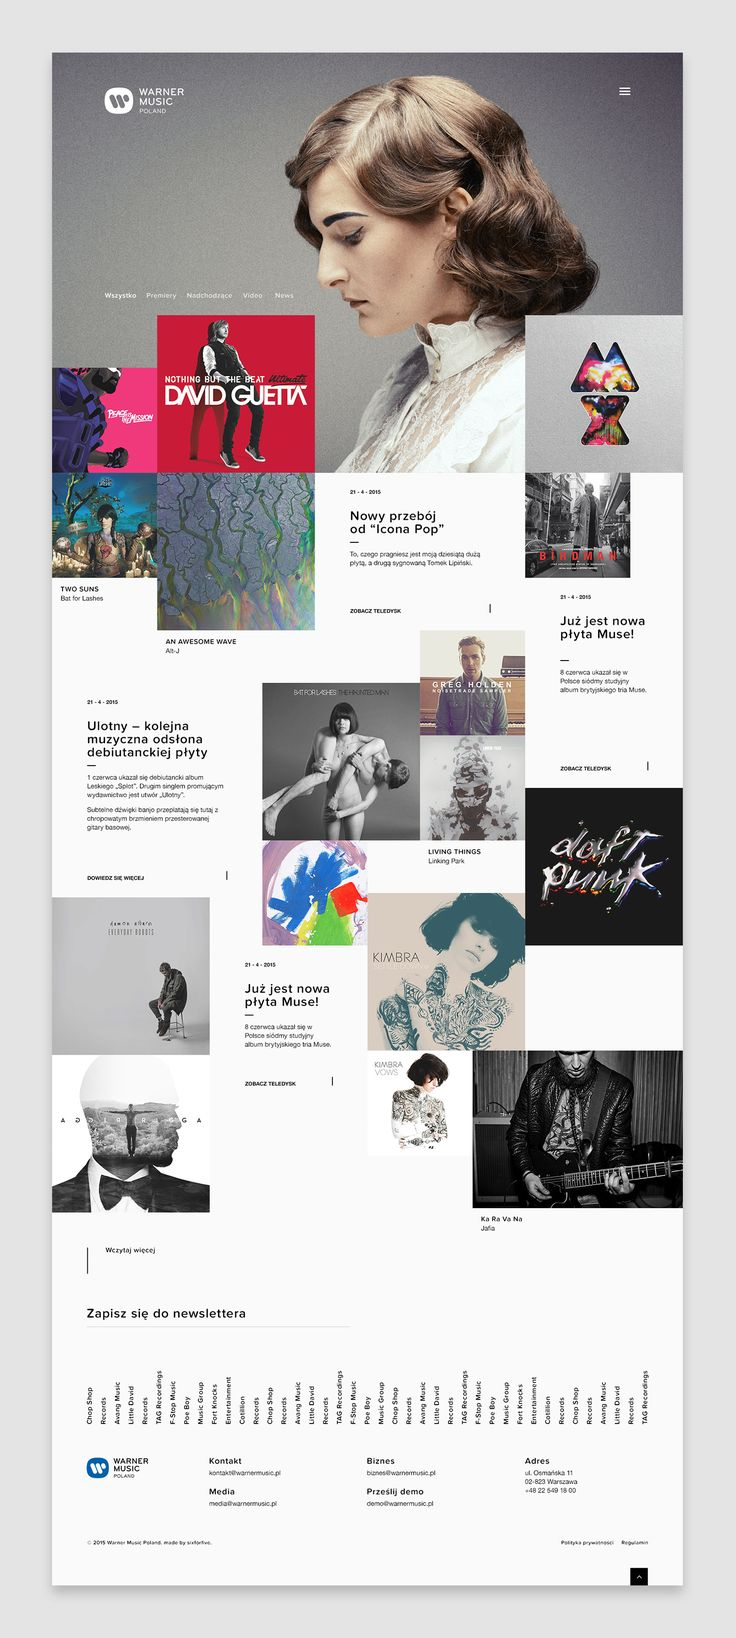 Warner Music Poland on Behance